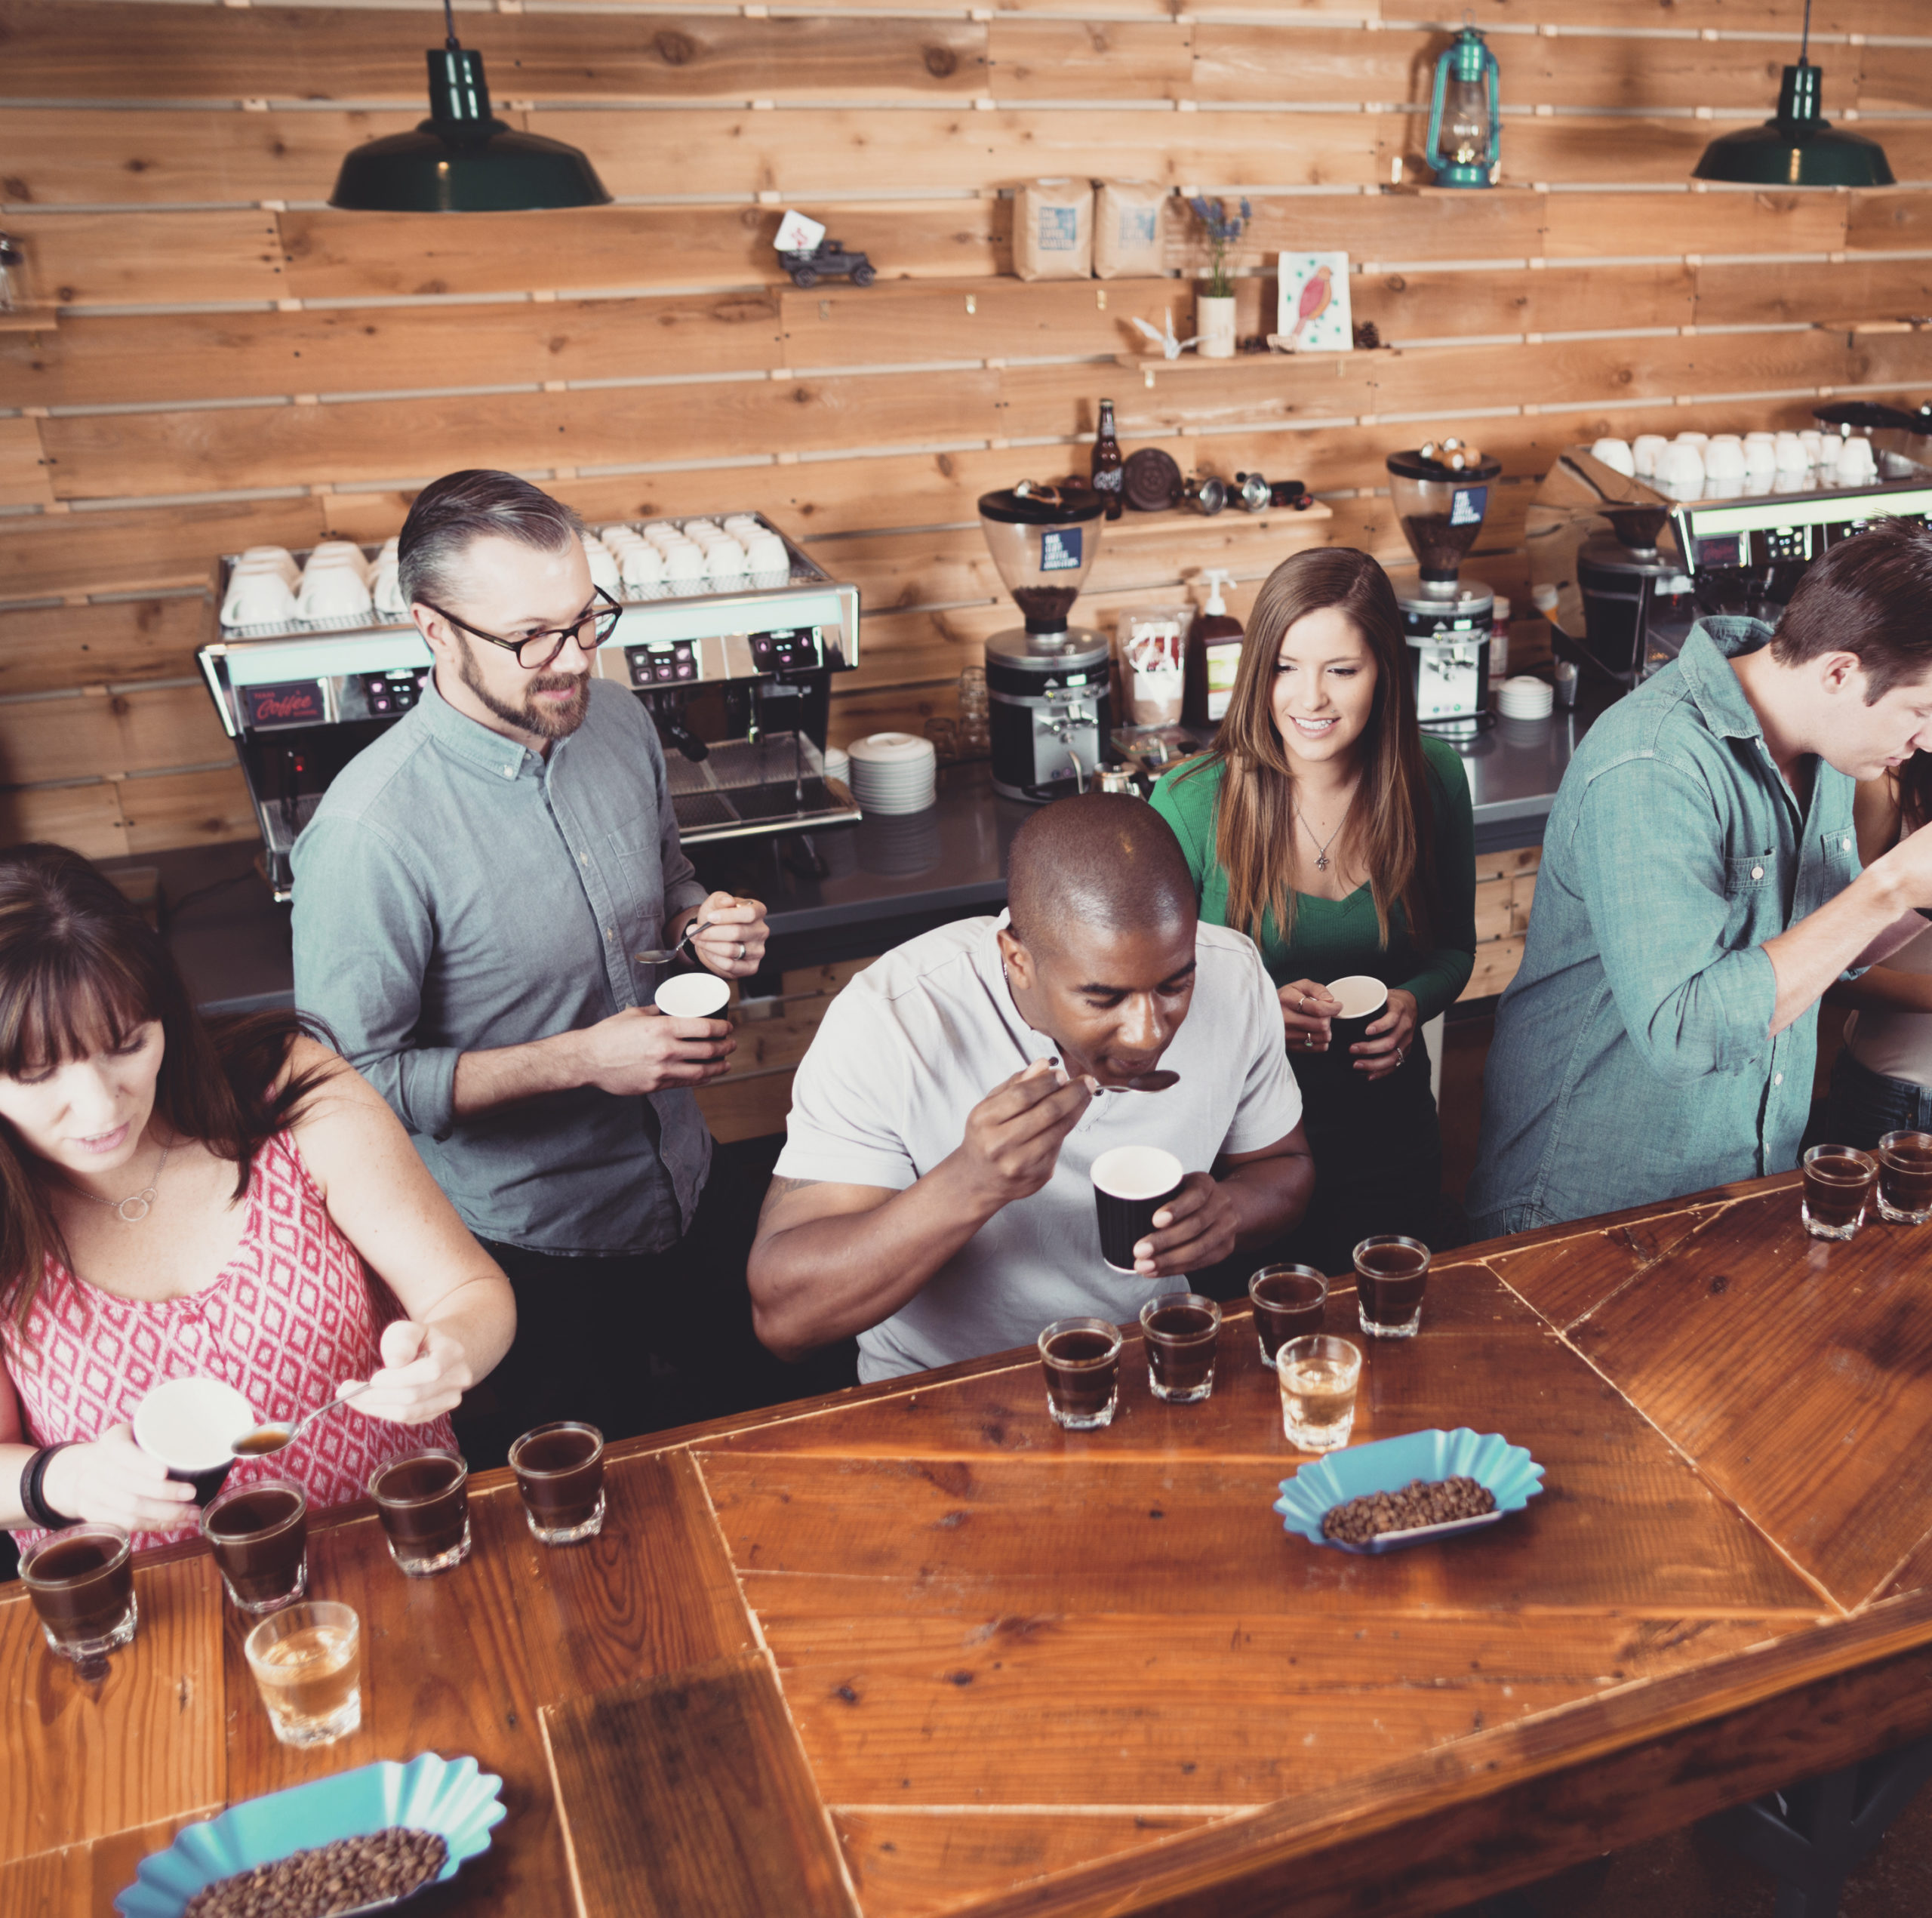 Employment opportunities at Texas Coffee School